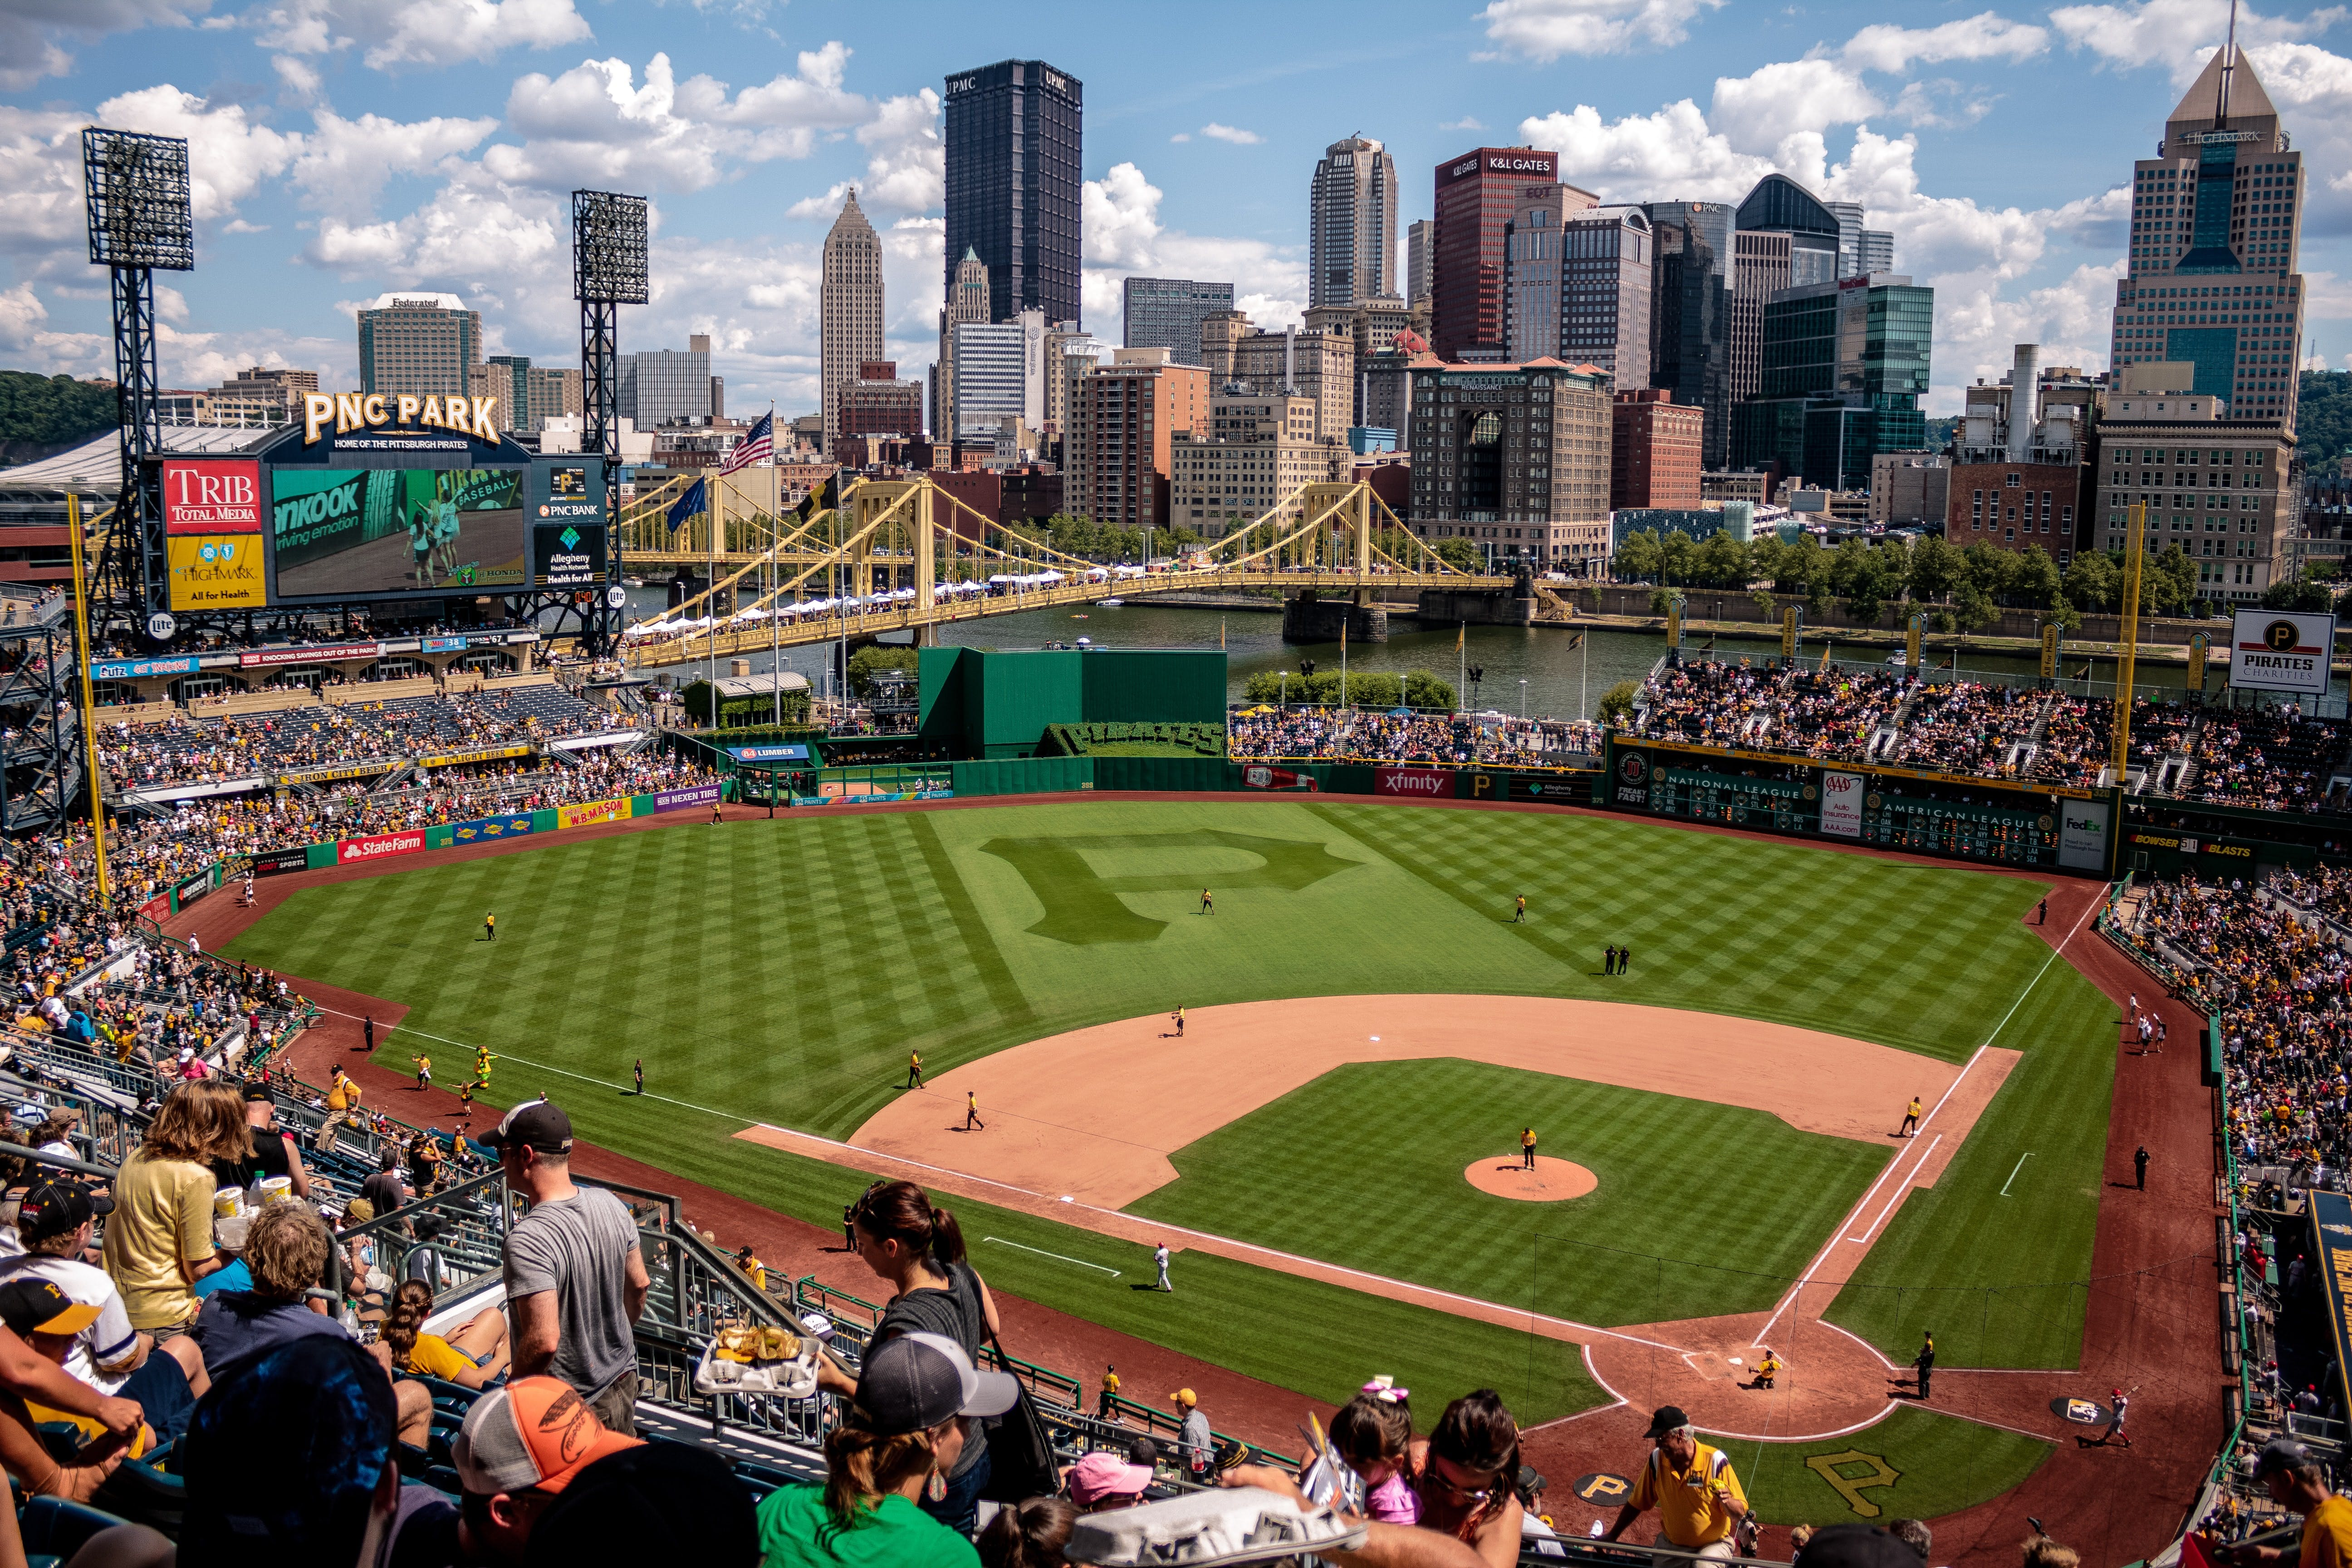 baseball game at PNC Park in Pittsburgh